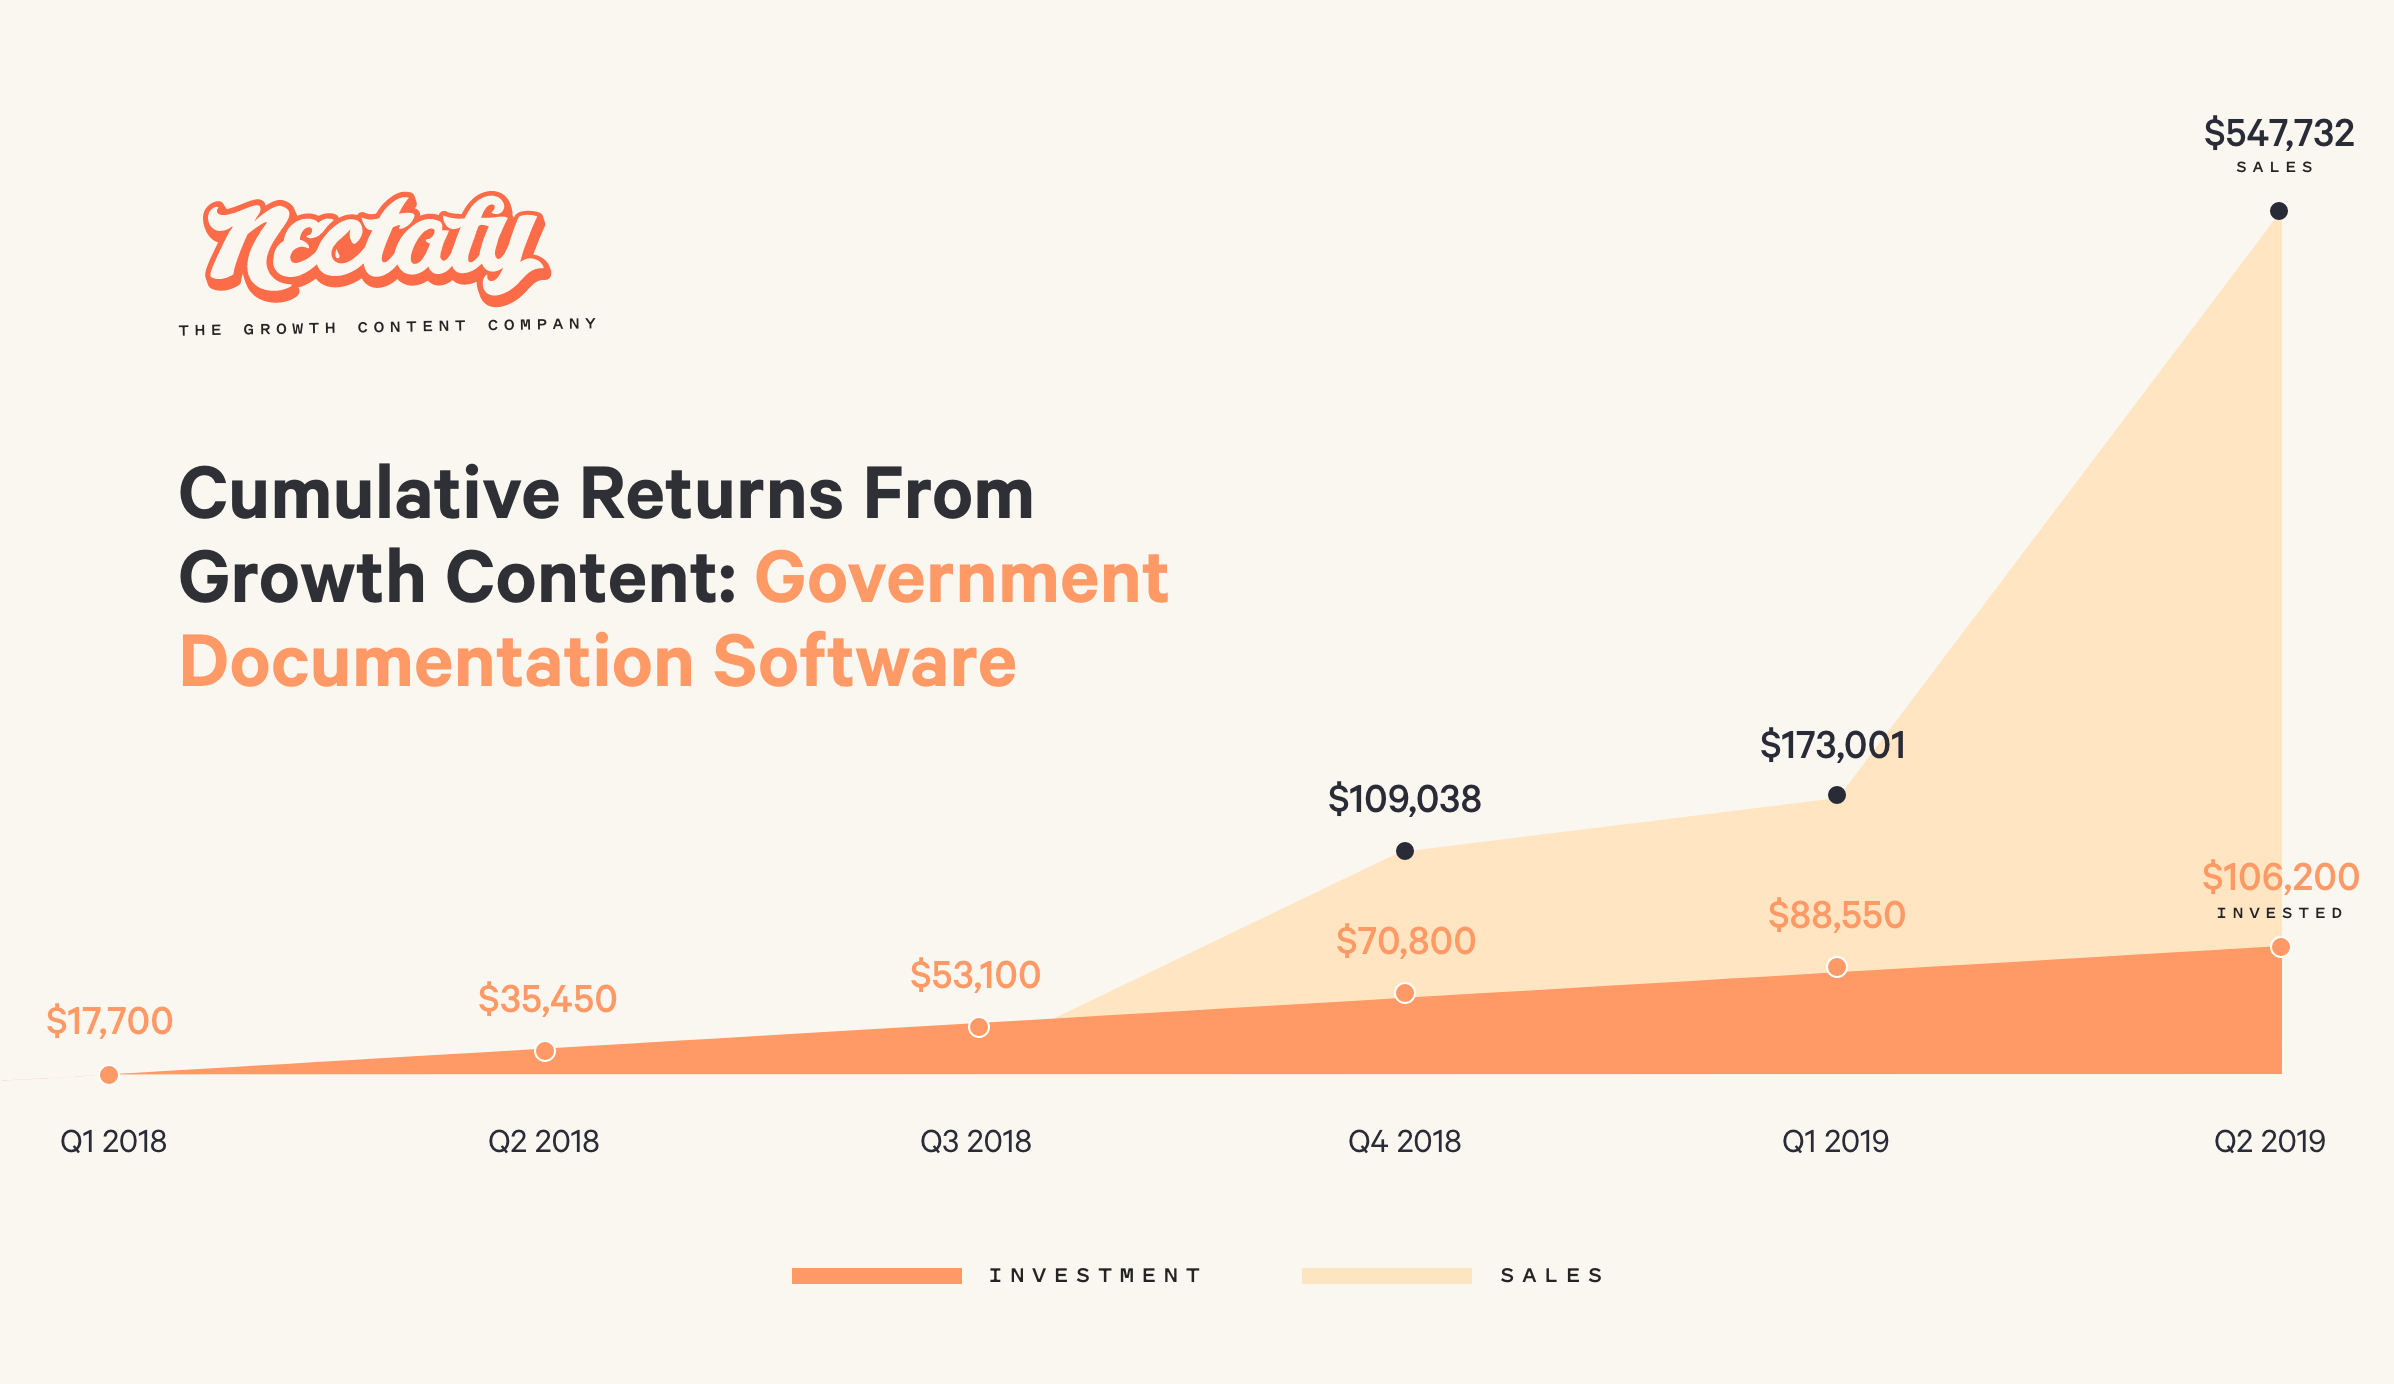 Cumulative returns from growth content - government documentation software